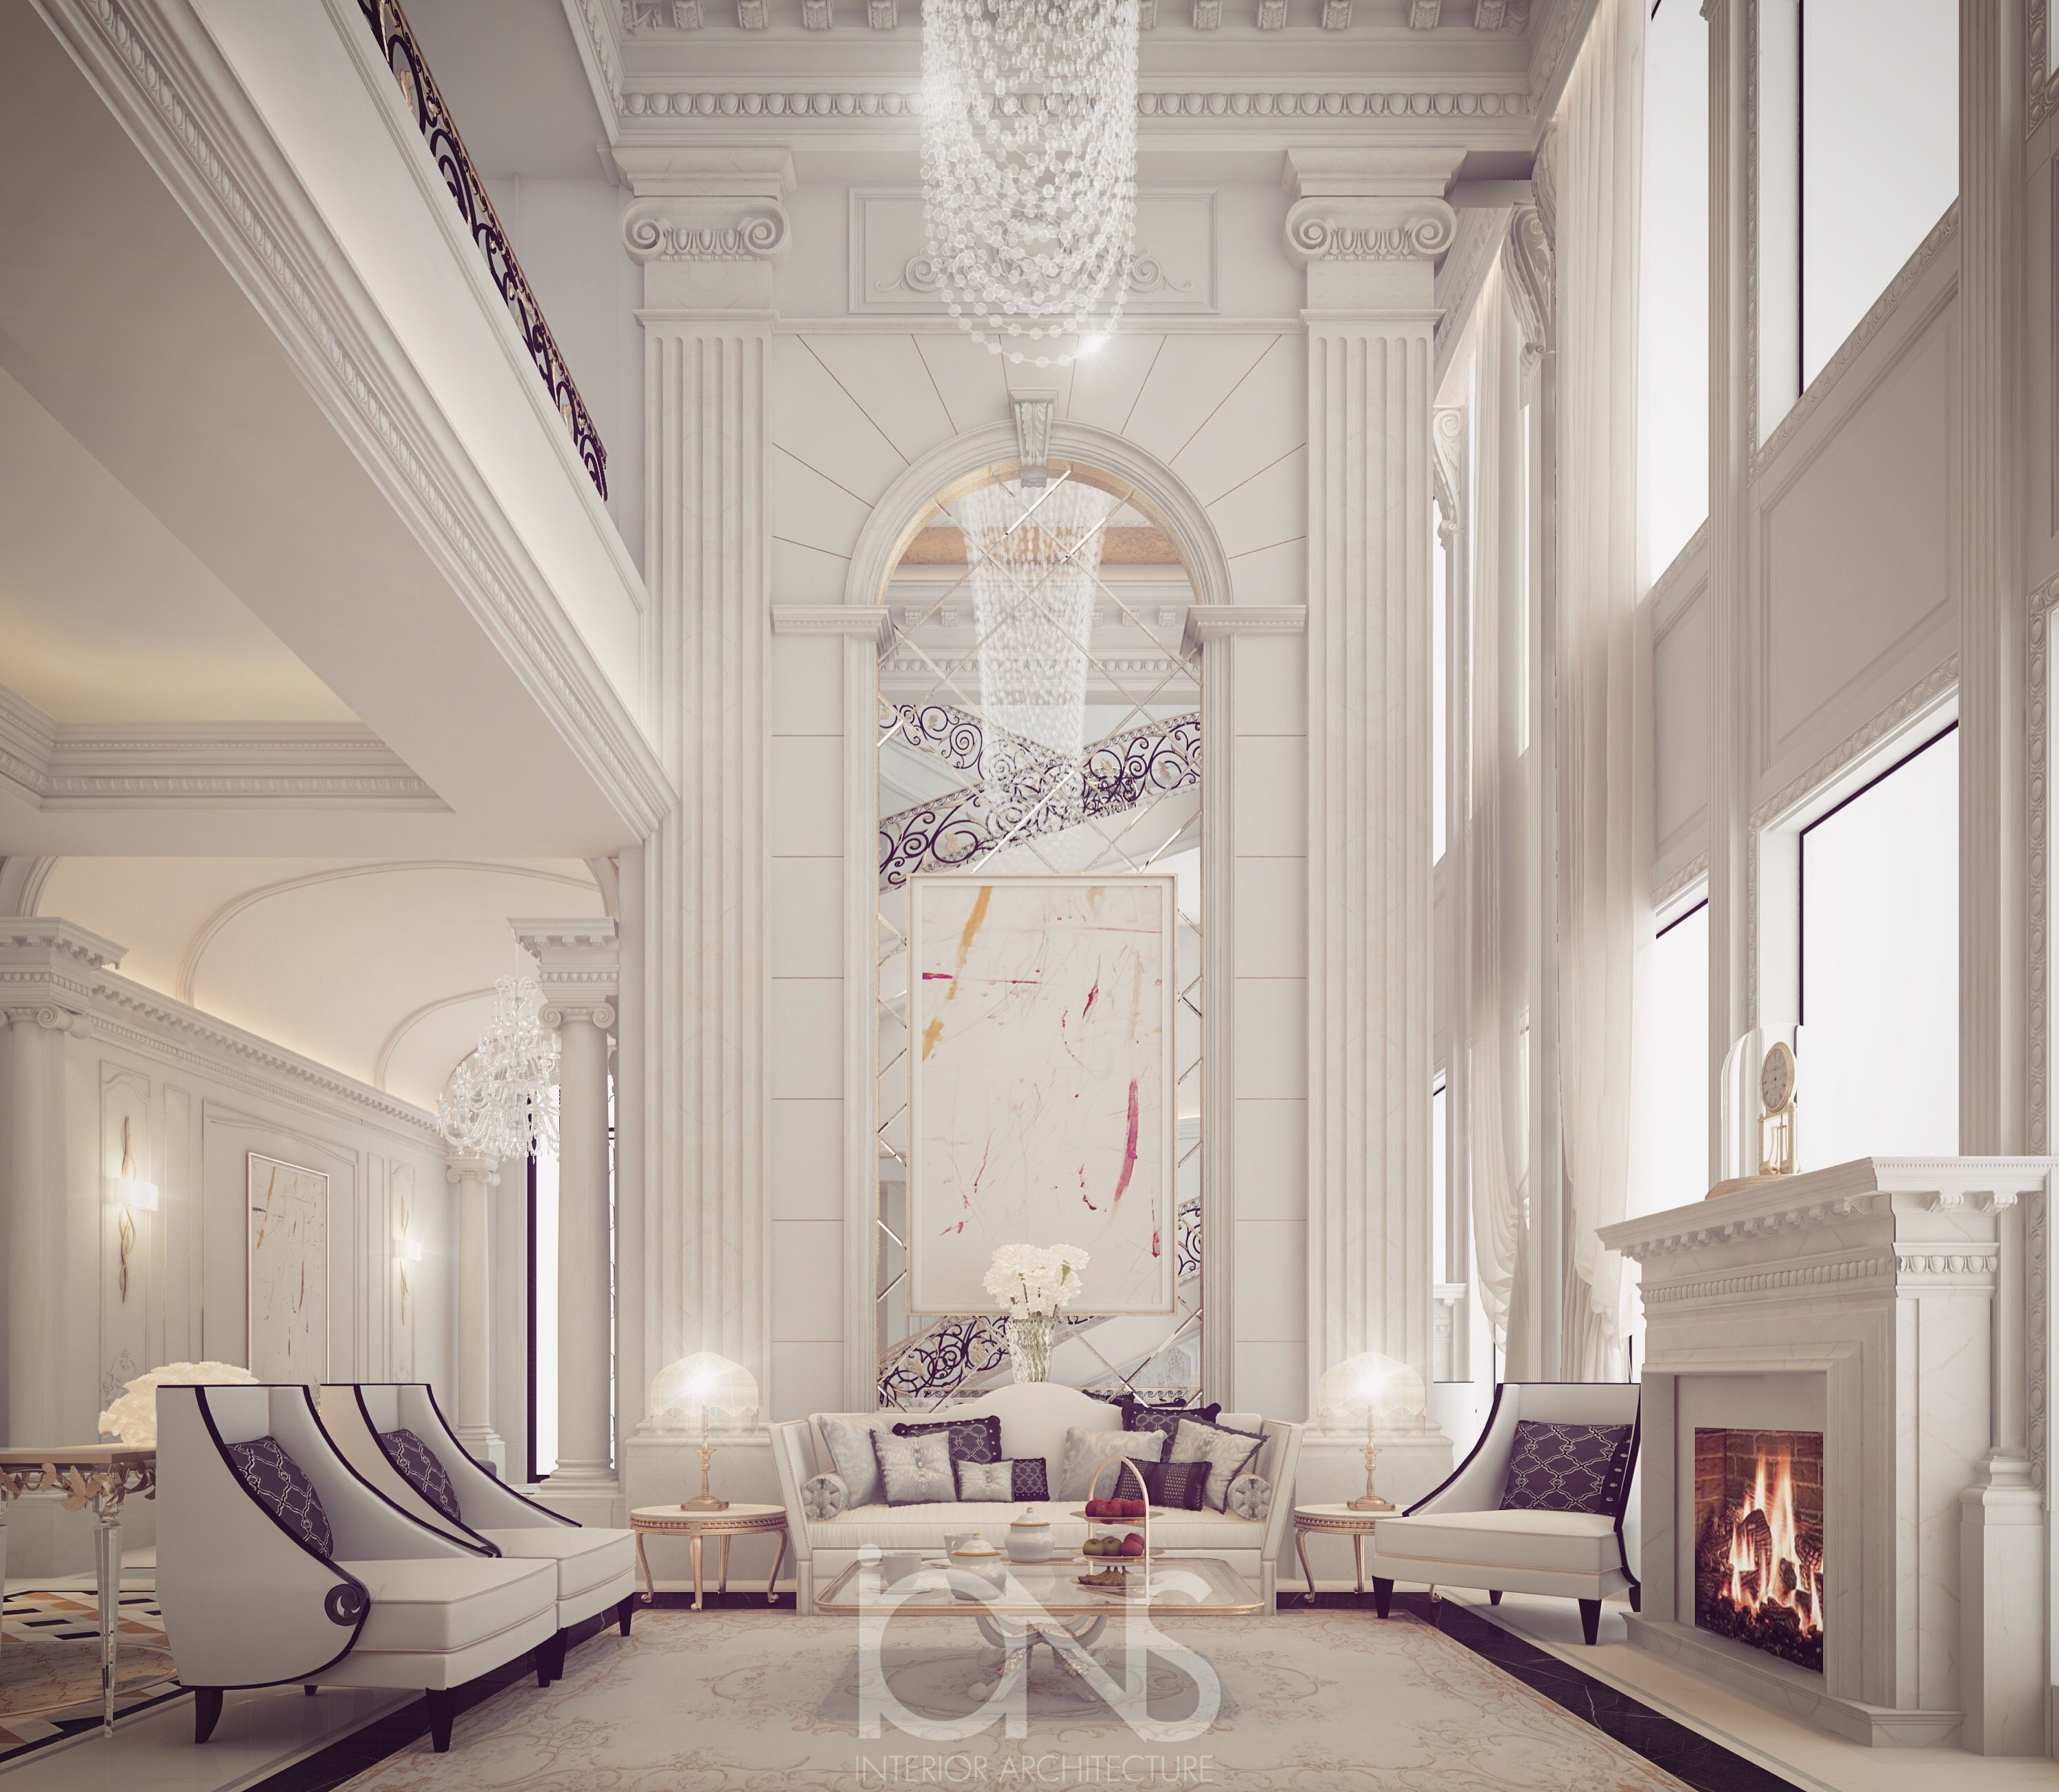 Fireplace lounge design private palace doha qatar for Interior design qatar